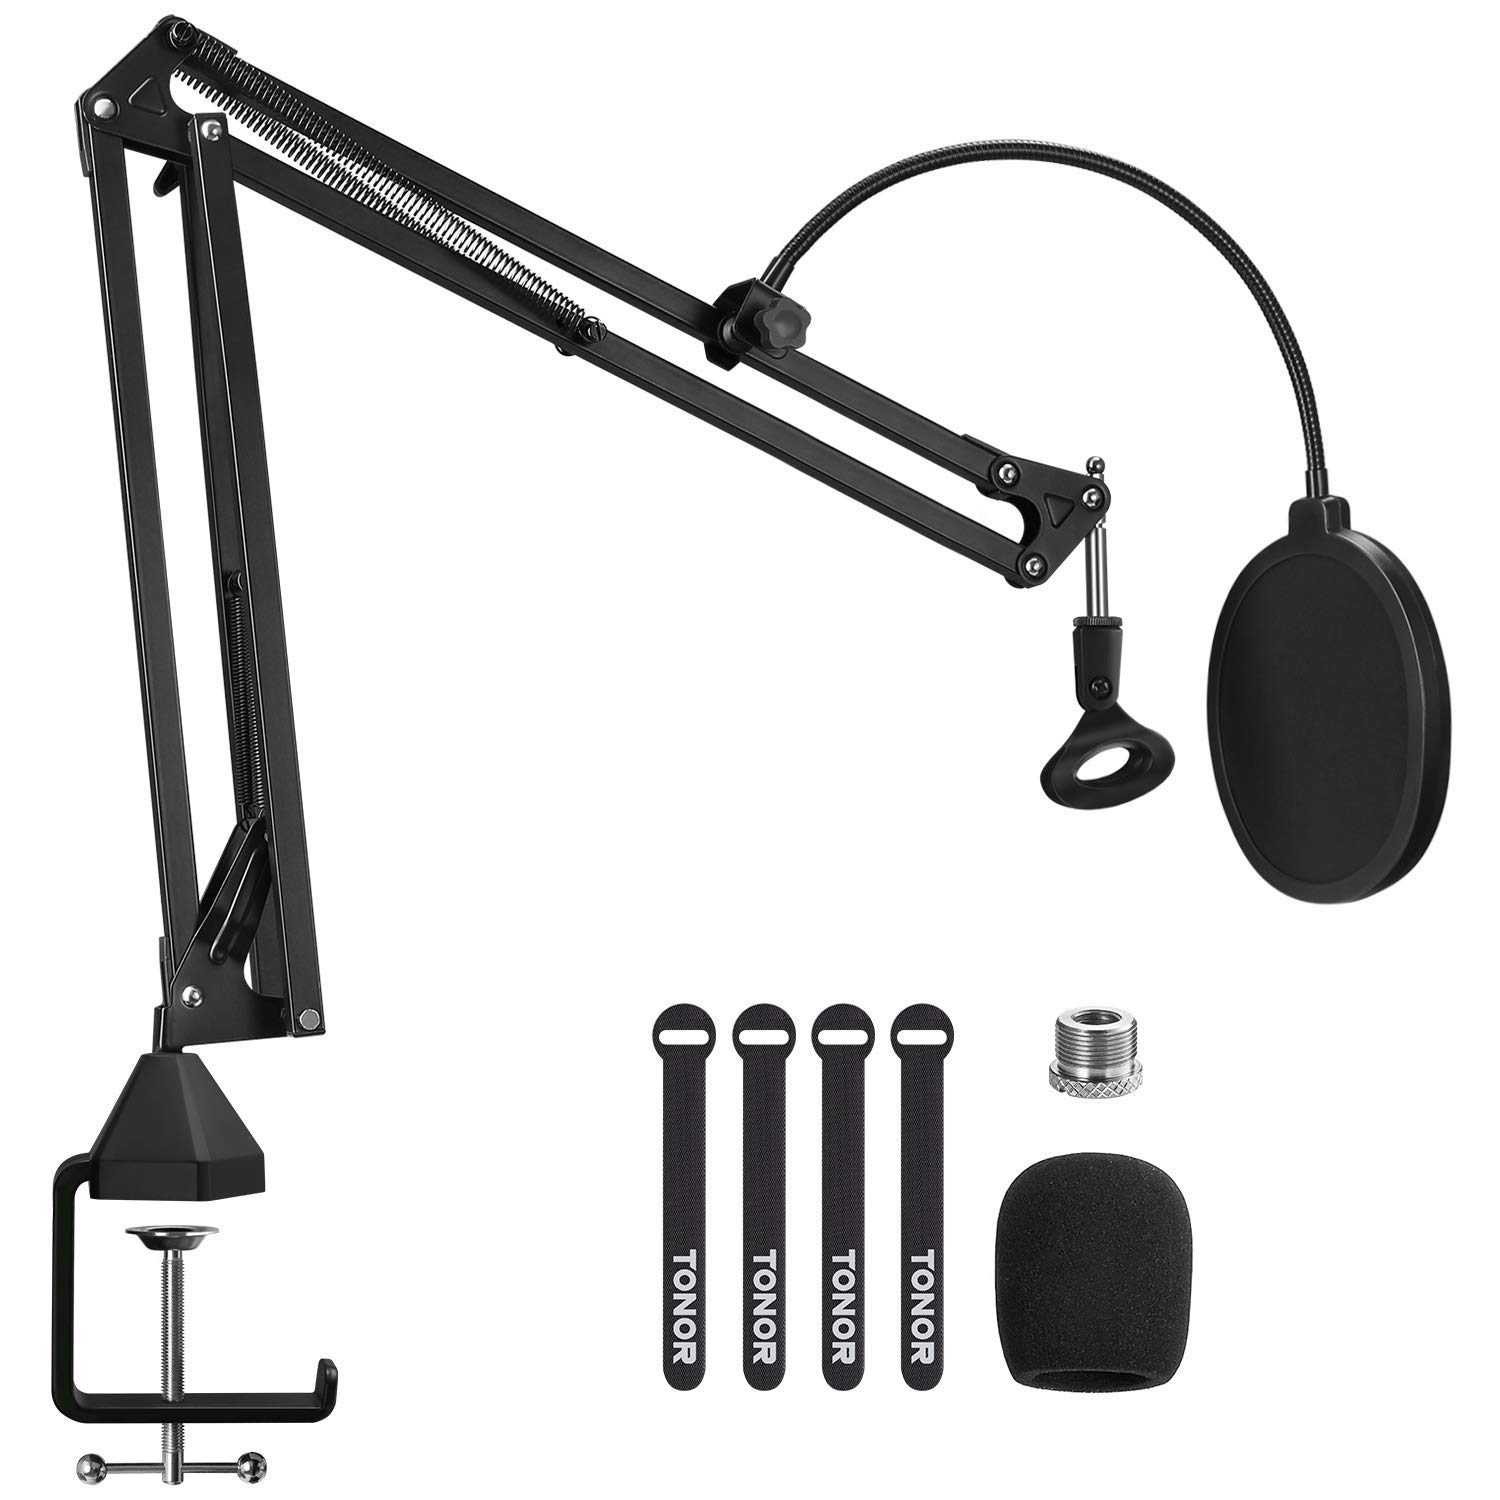 """Microphone Arm Stand, TONOR Adjustable Suspension Boom Scissor Mic Stand with Pop Filter, 3/8"""" to 5/8"""" Adapter, Mic Clip, Upgraded Heavy Duty Clamp for Blue Yeti Nano Snowball Ice and Other Mics(T20)"""